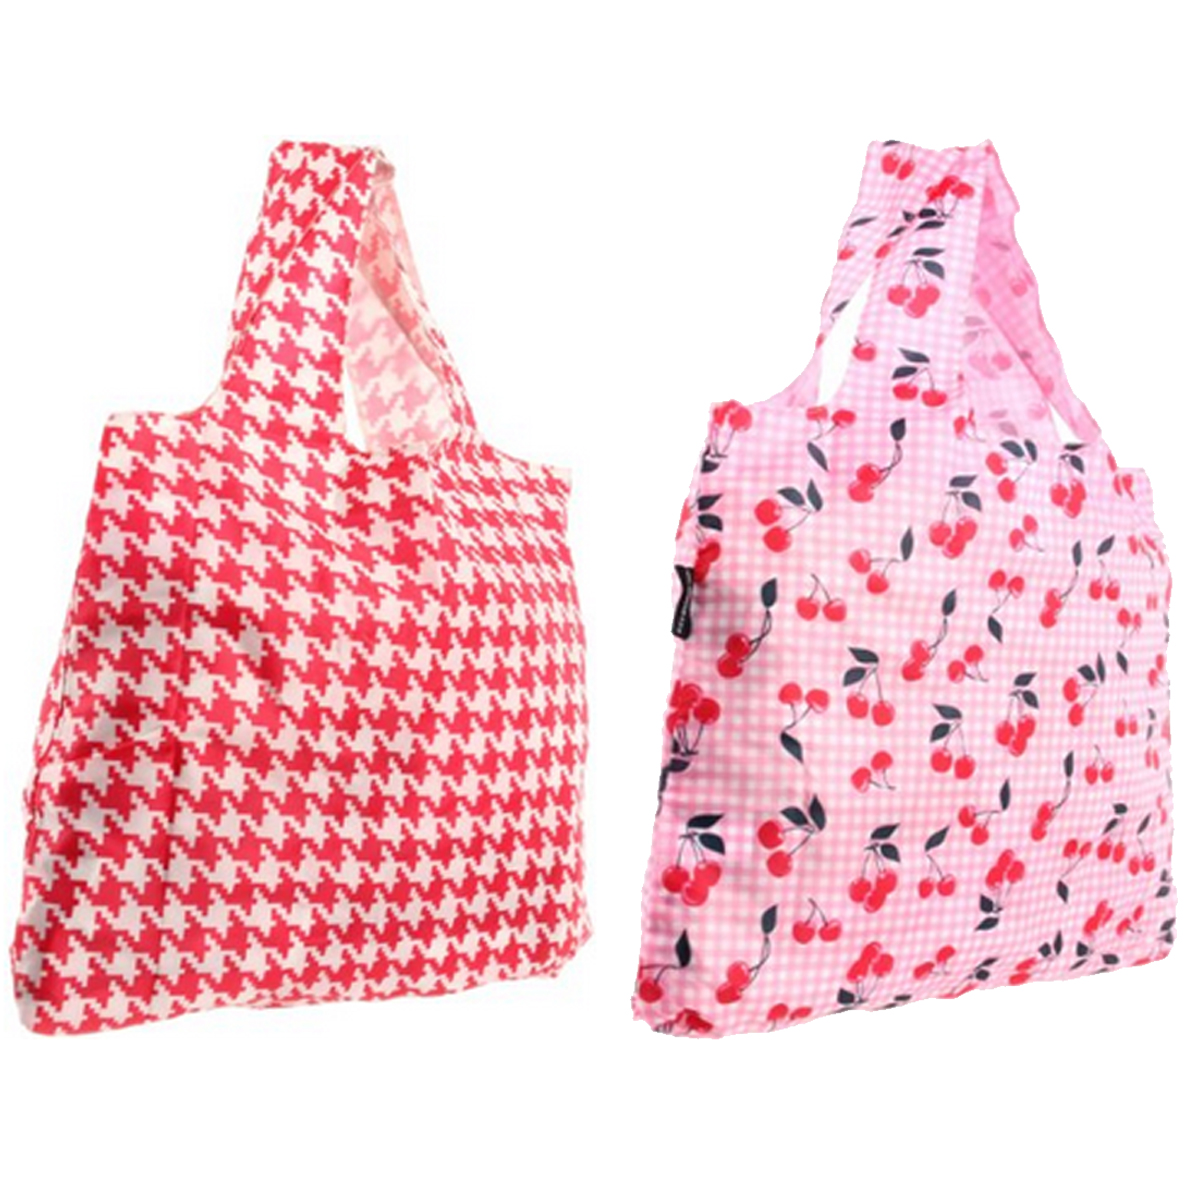 Envirosax Cherry Lane Reusable Shopping Bags (set of 2)